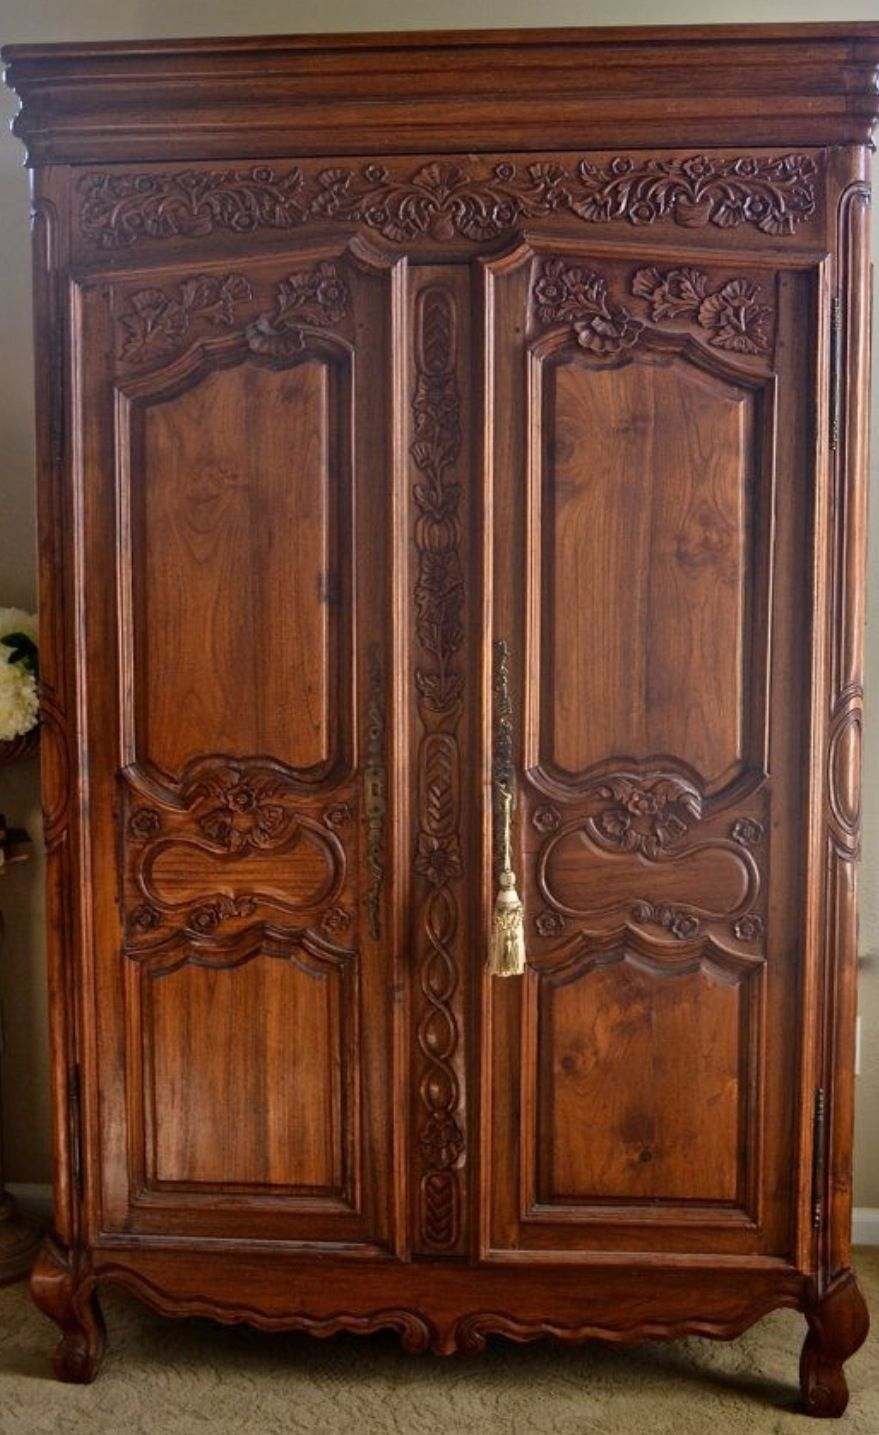 Antique armoire | France | Pinterest | Muebles antiguos, De época y ...